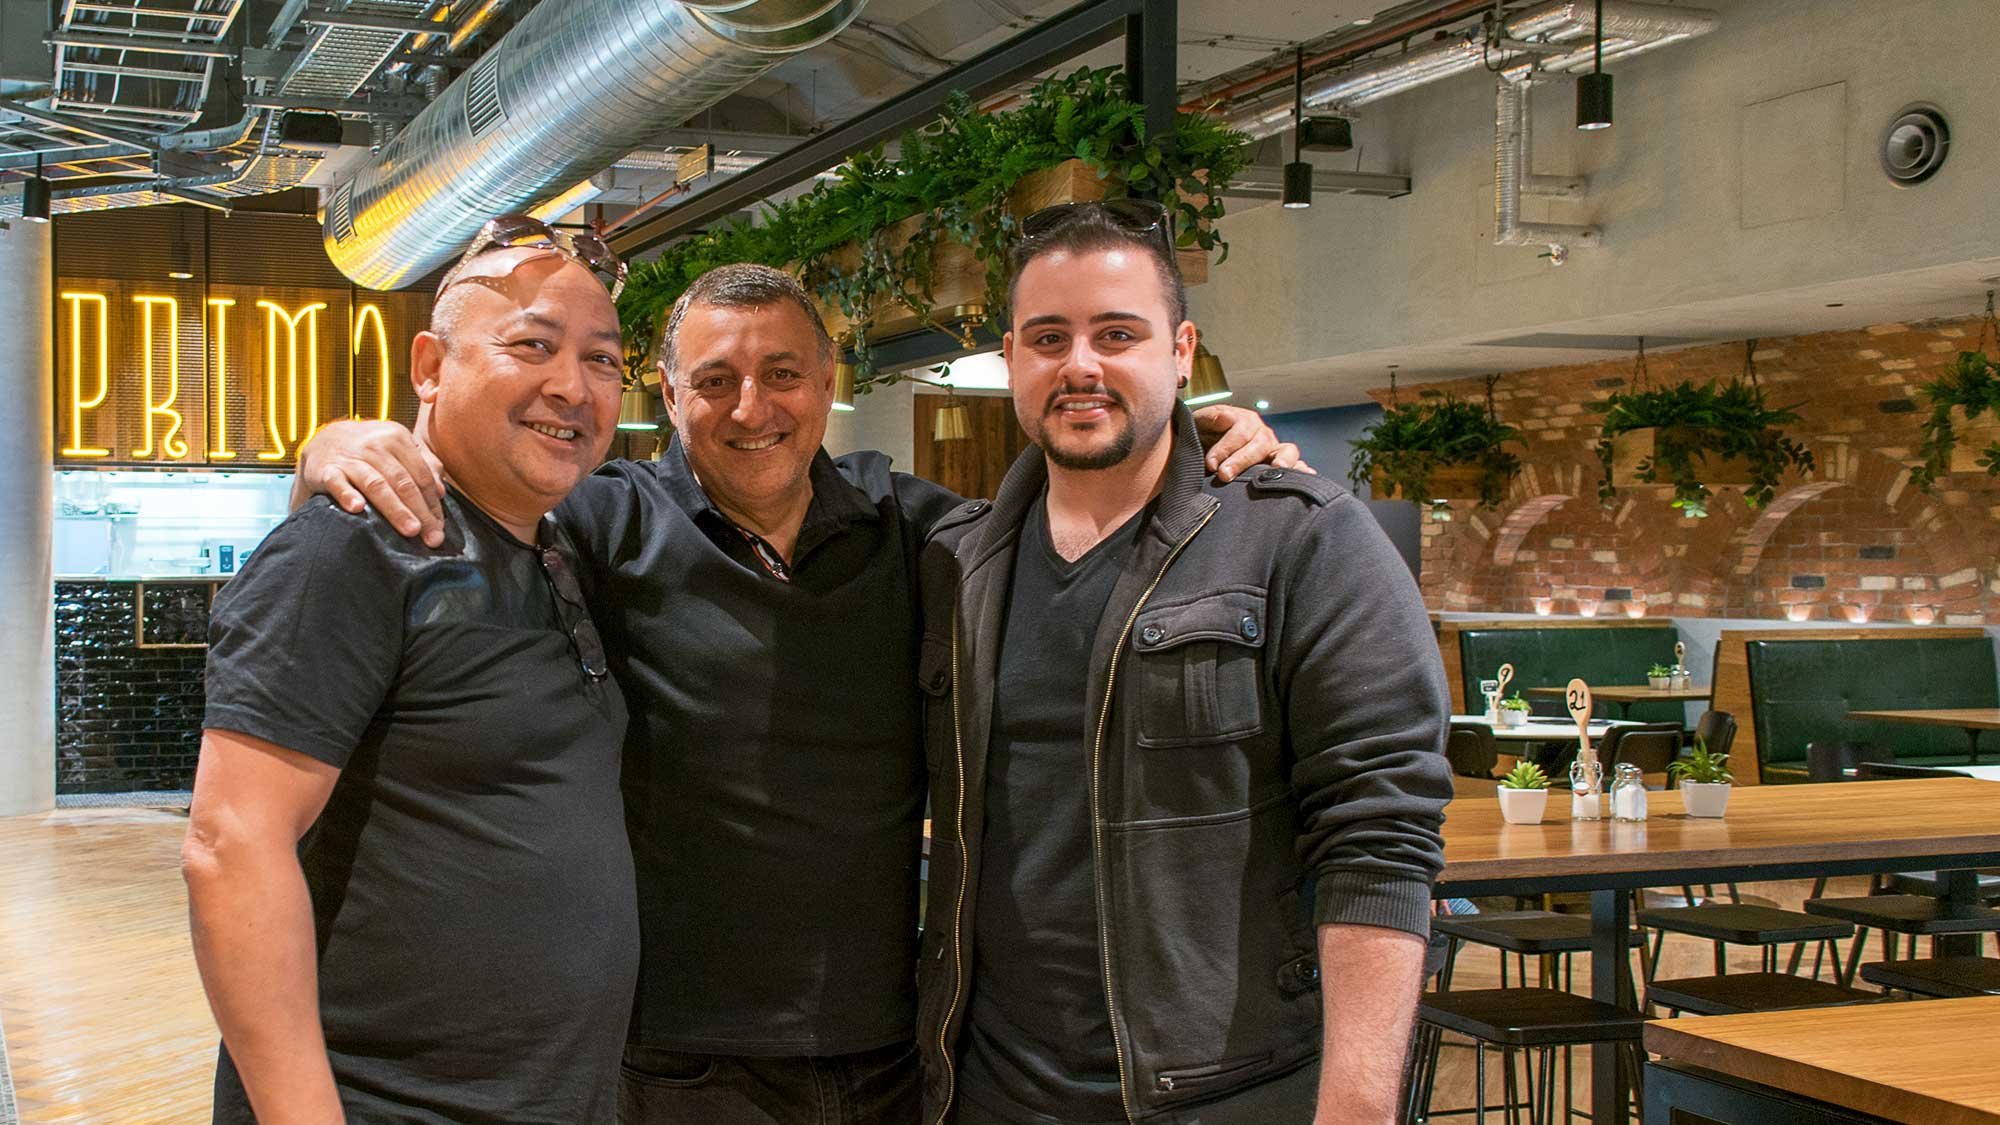 Harold (Concept Collections), Dino (Caffe Primo), and Ilario (Concept Collections) - Caffe Primo Modbury